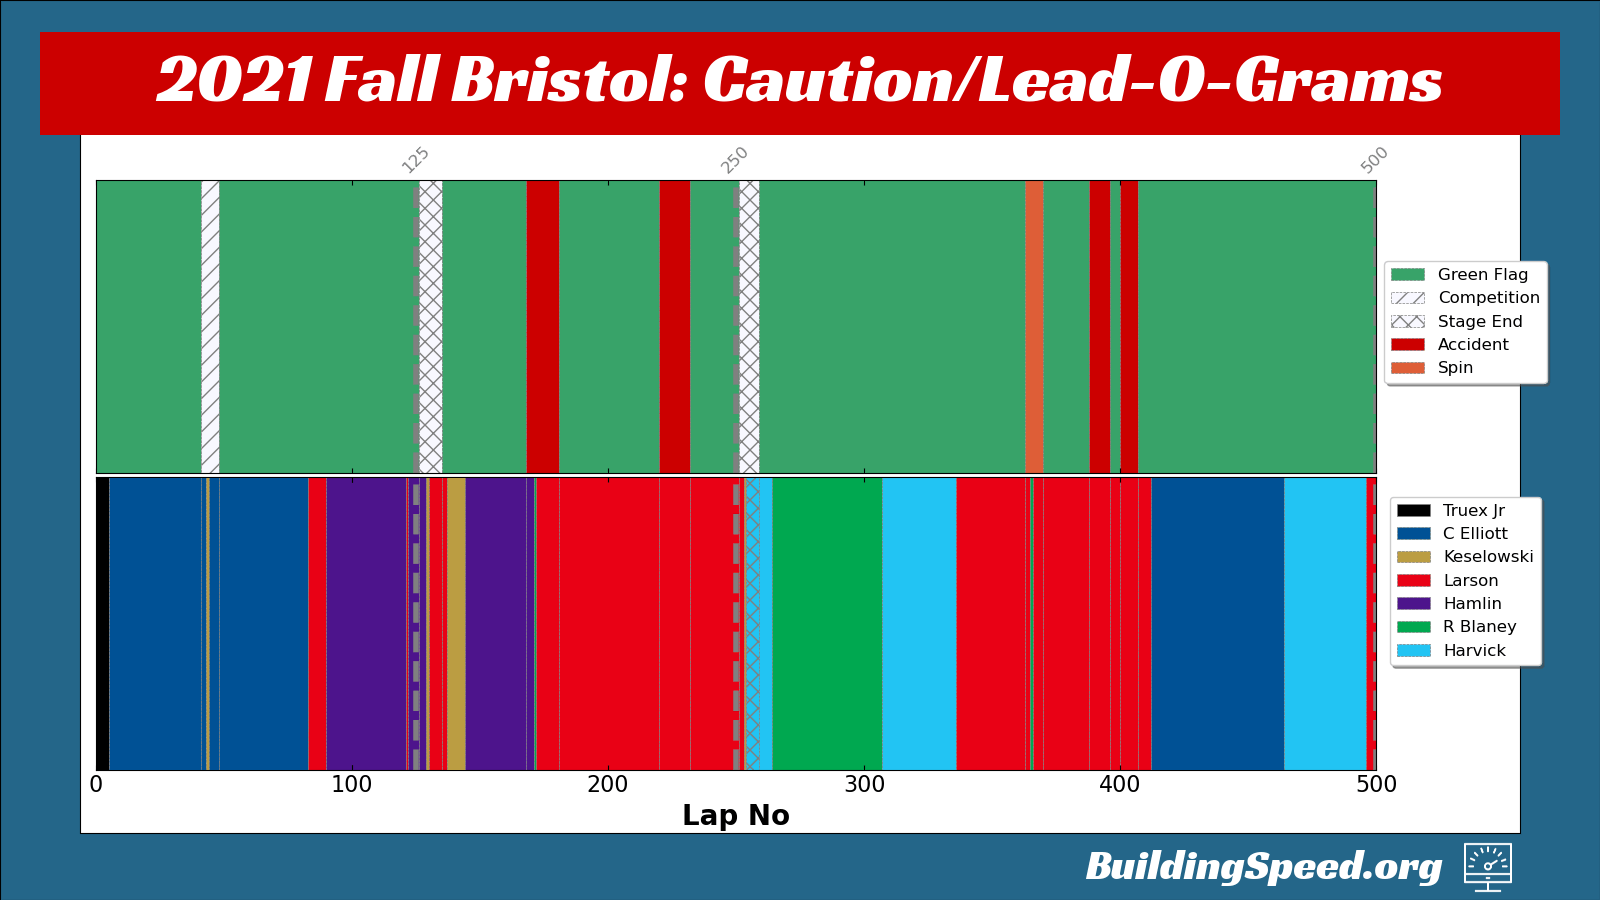 The Fall Bristol 2021 Race Caution and Lead-O-Grams show the main players and the green-flag racing.